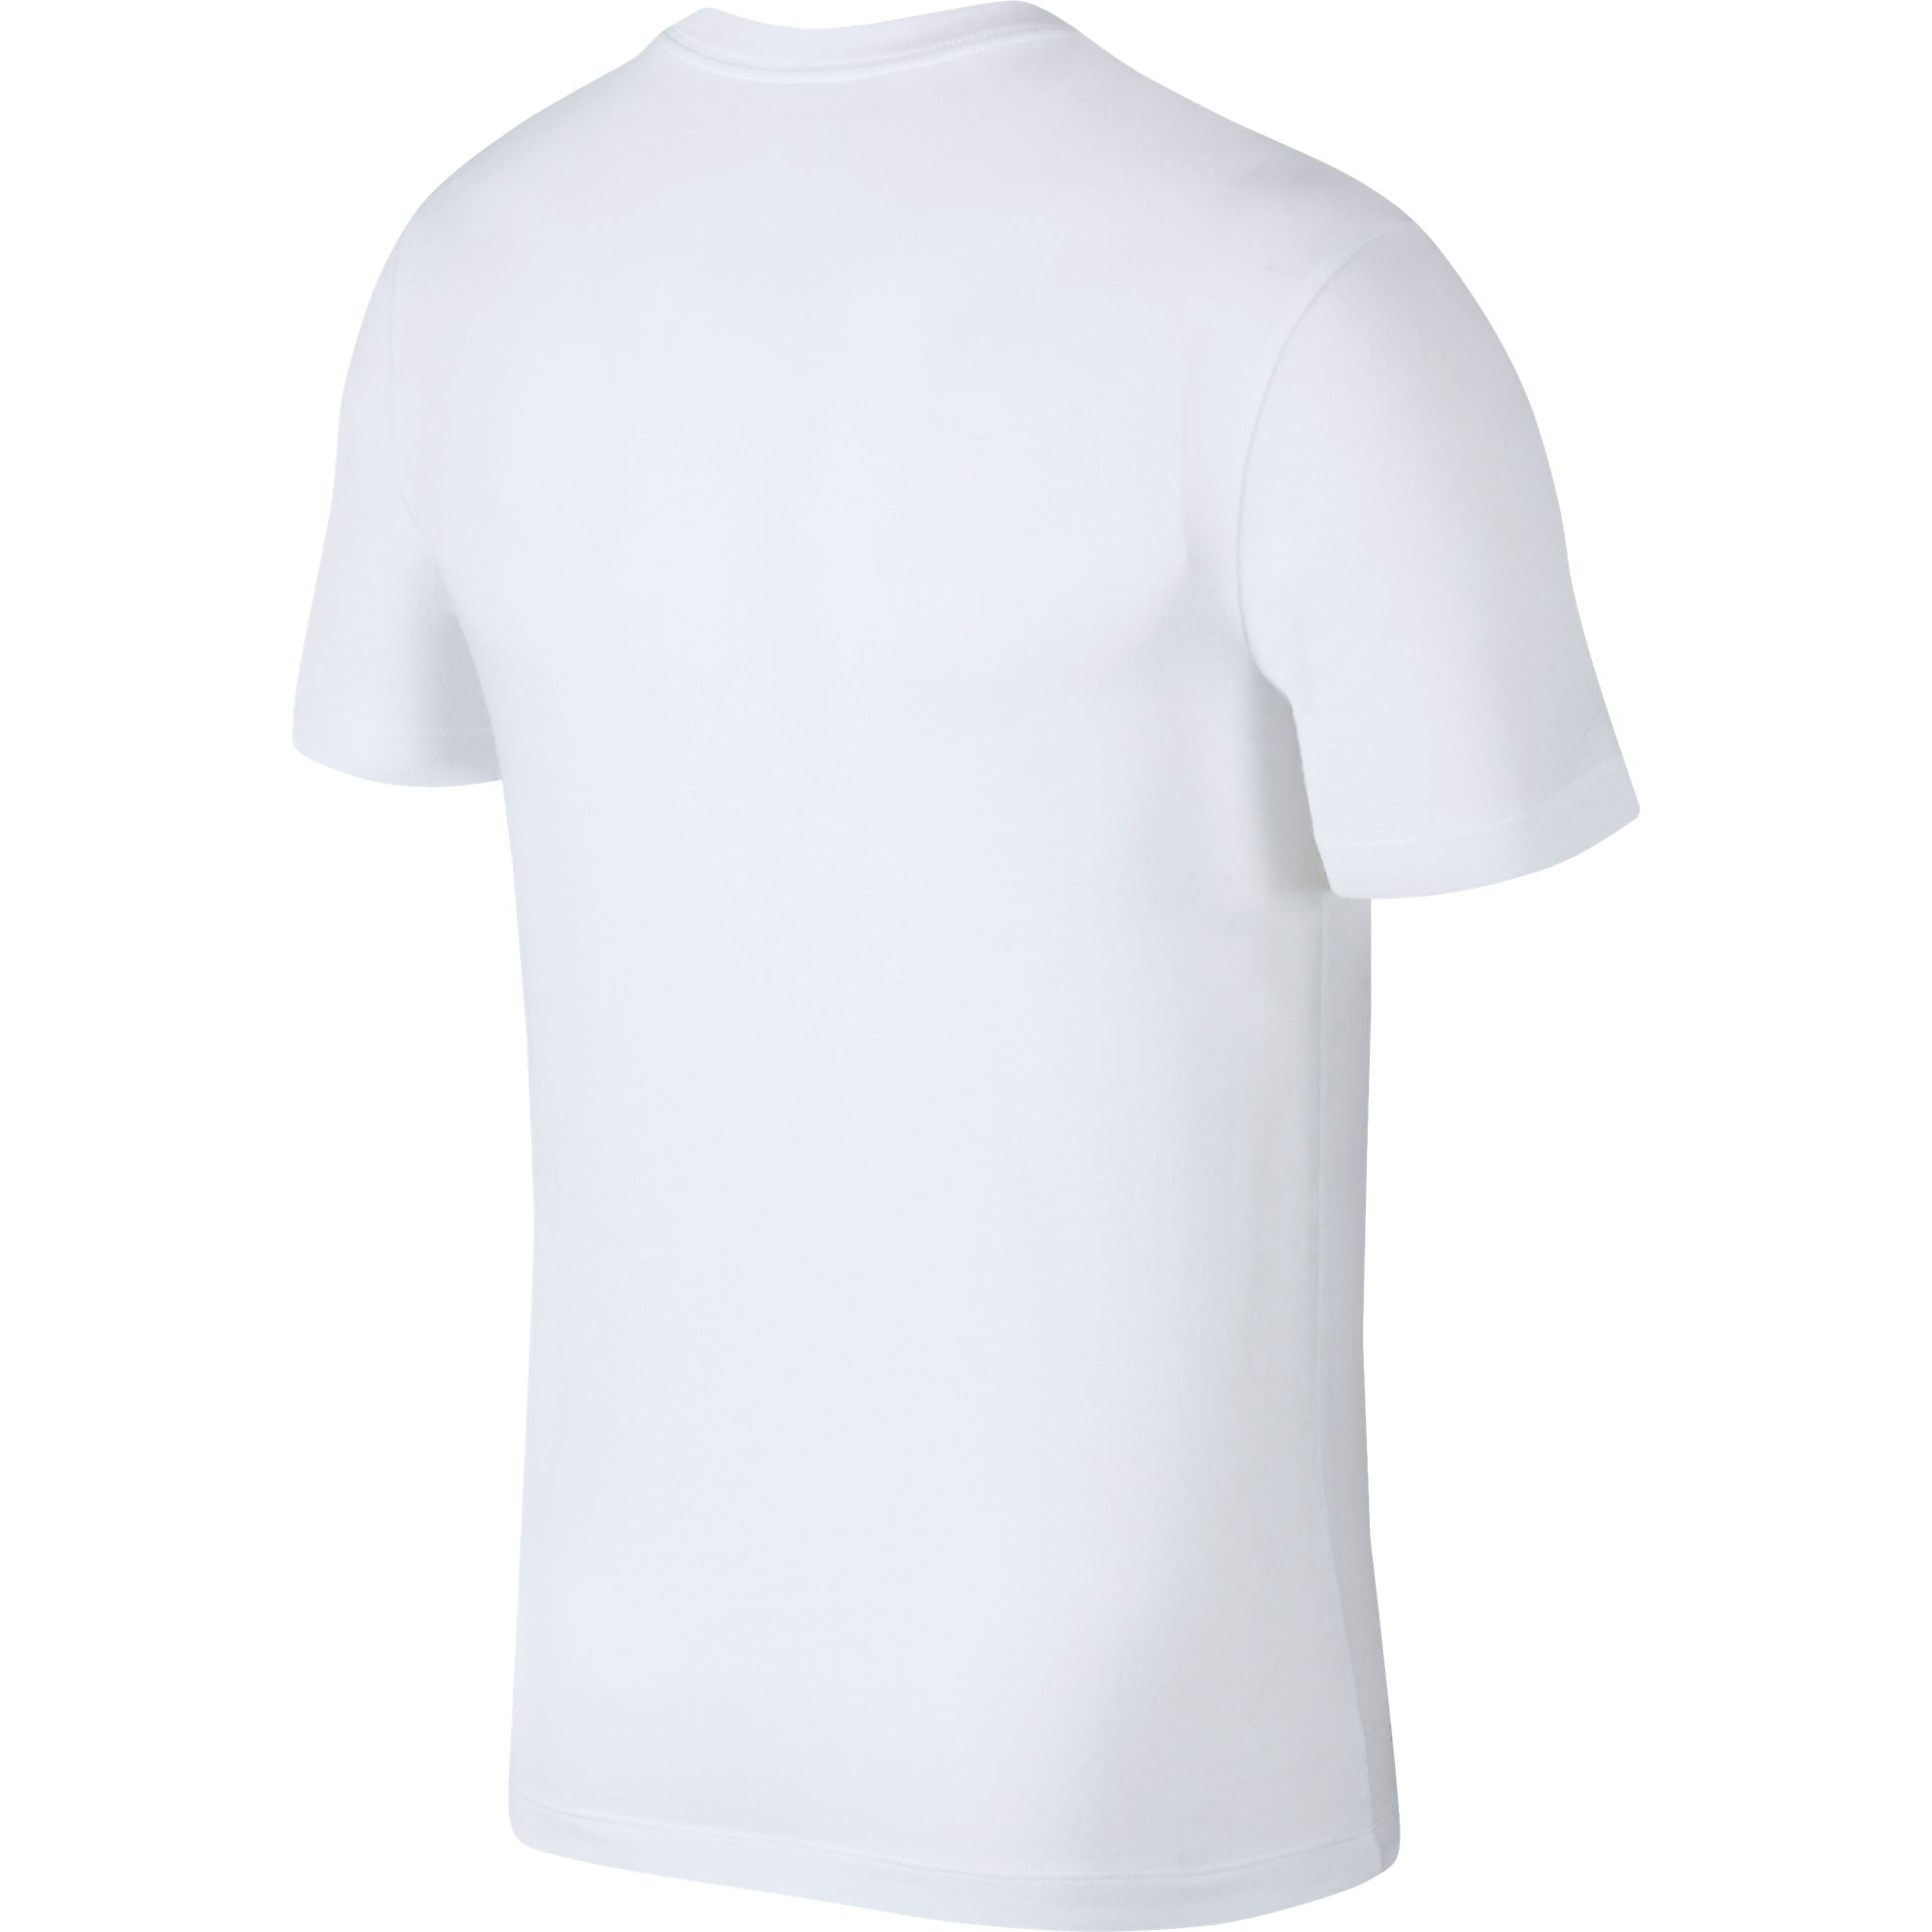 Nike Basketball Dri-Fit Tee - White